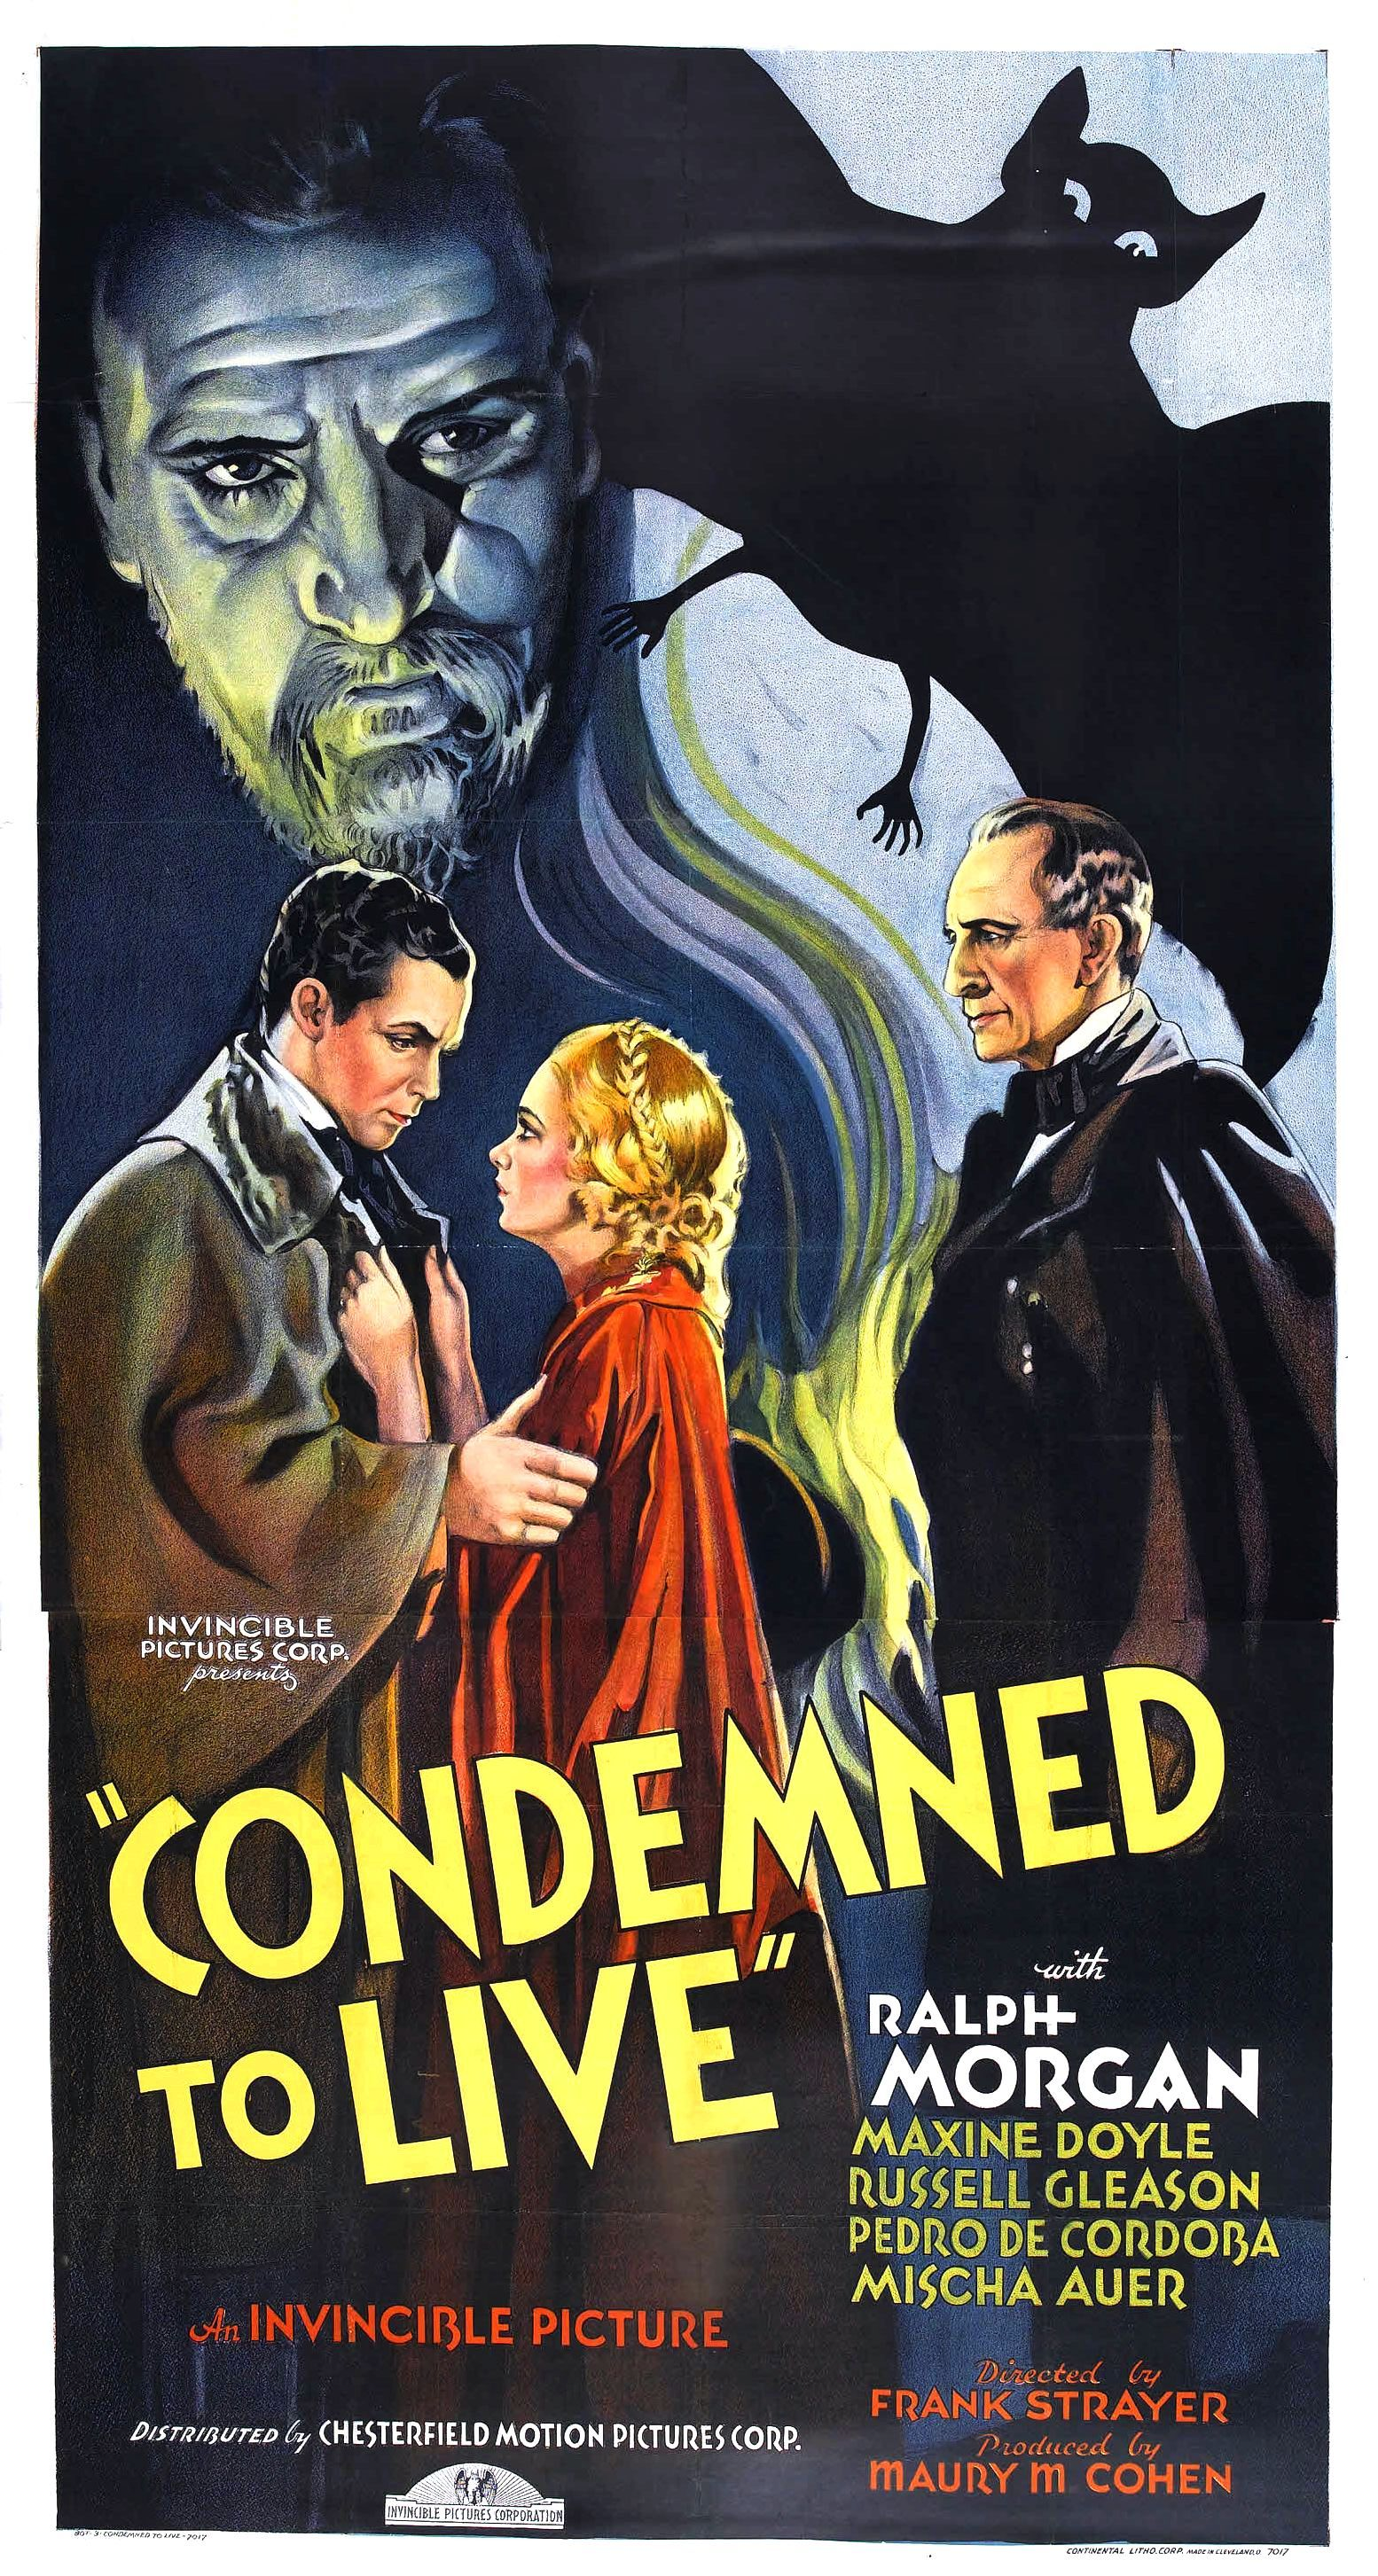 Condemned To Live 1935 Old Film Posters Old Movie Posters Movie Posters